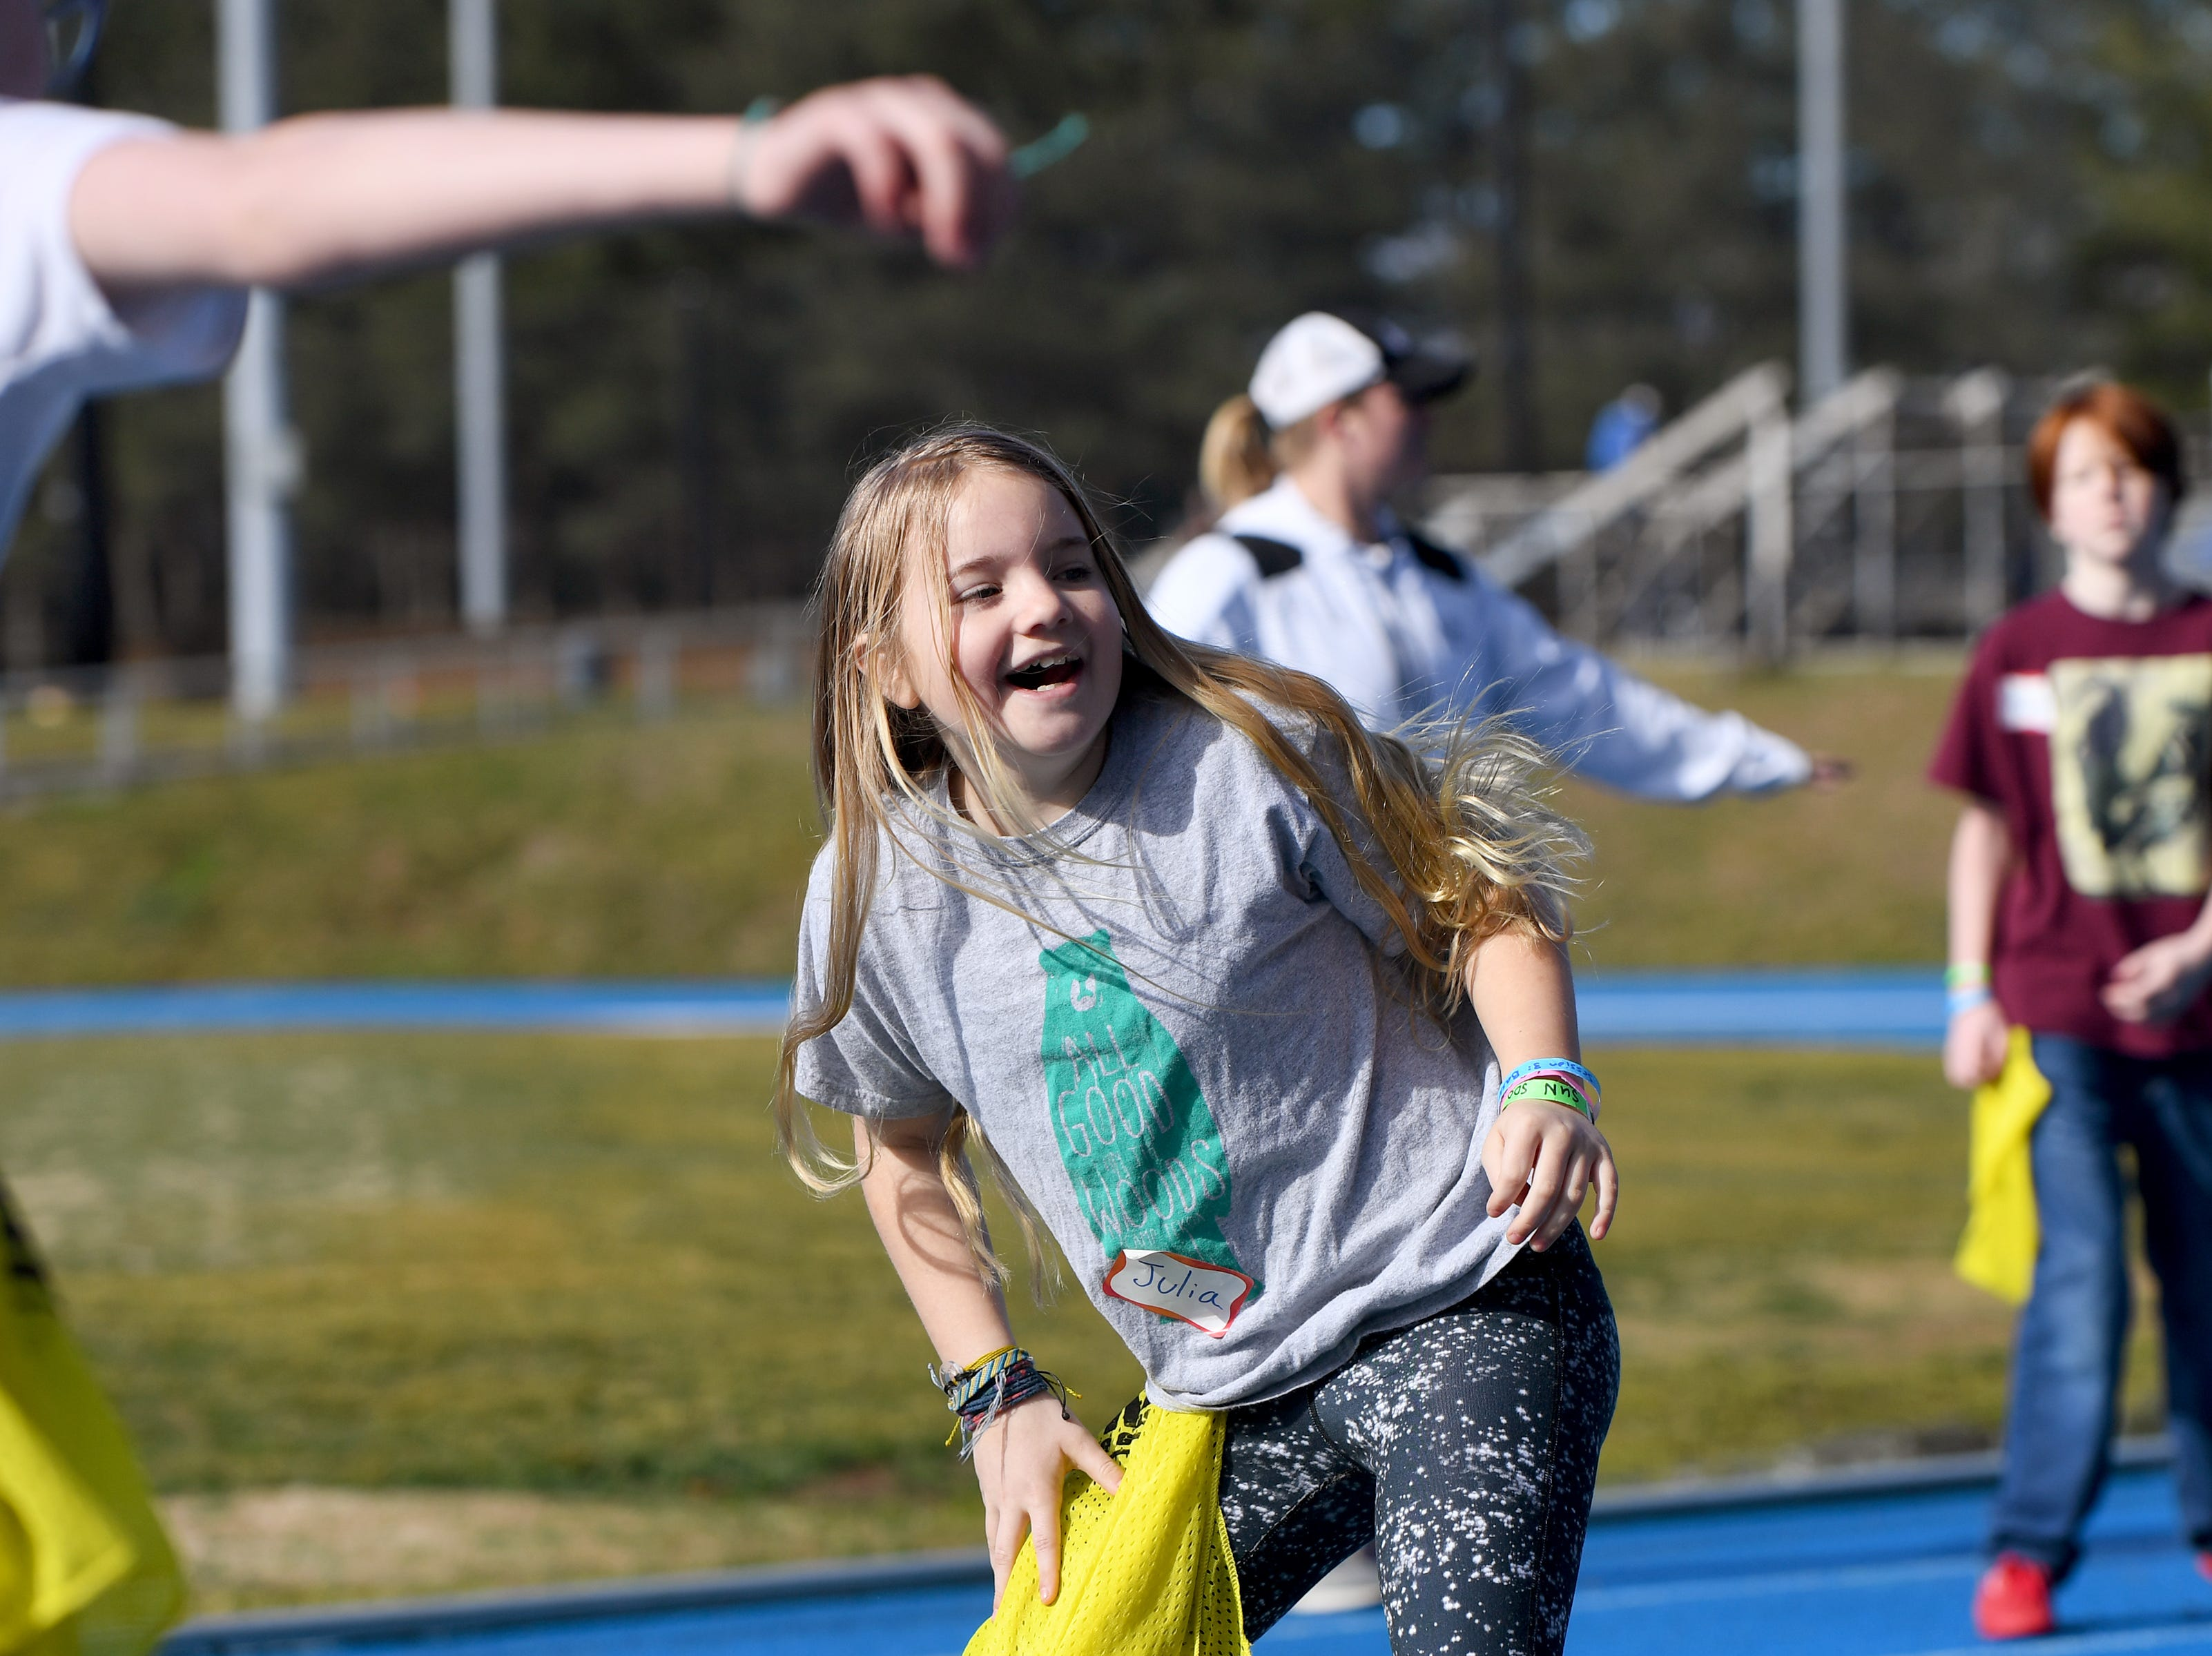 Julia Trollinger, 10, laughs as she plays a game of pinny tag during a lacrosse clinic at the National Girls and Women in Sports Day at UNC Asheville on Feb. 16, 2019. The clinic, hosted by Asheville Parks and Recreation and Buncombe County Recreation Services introduced girls to different sports of their choice throughout the morning.